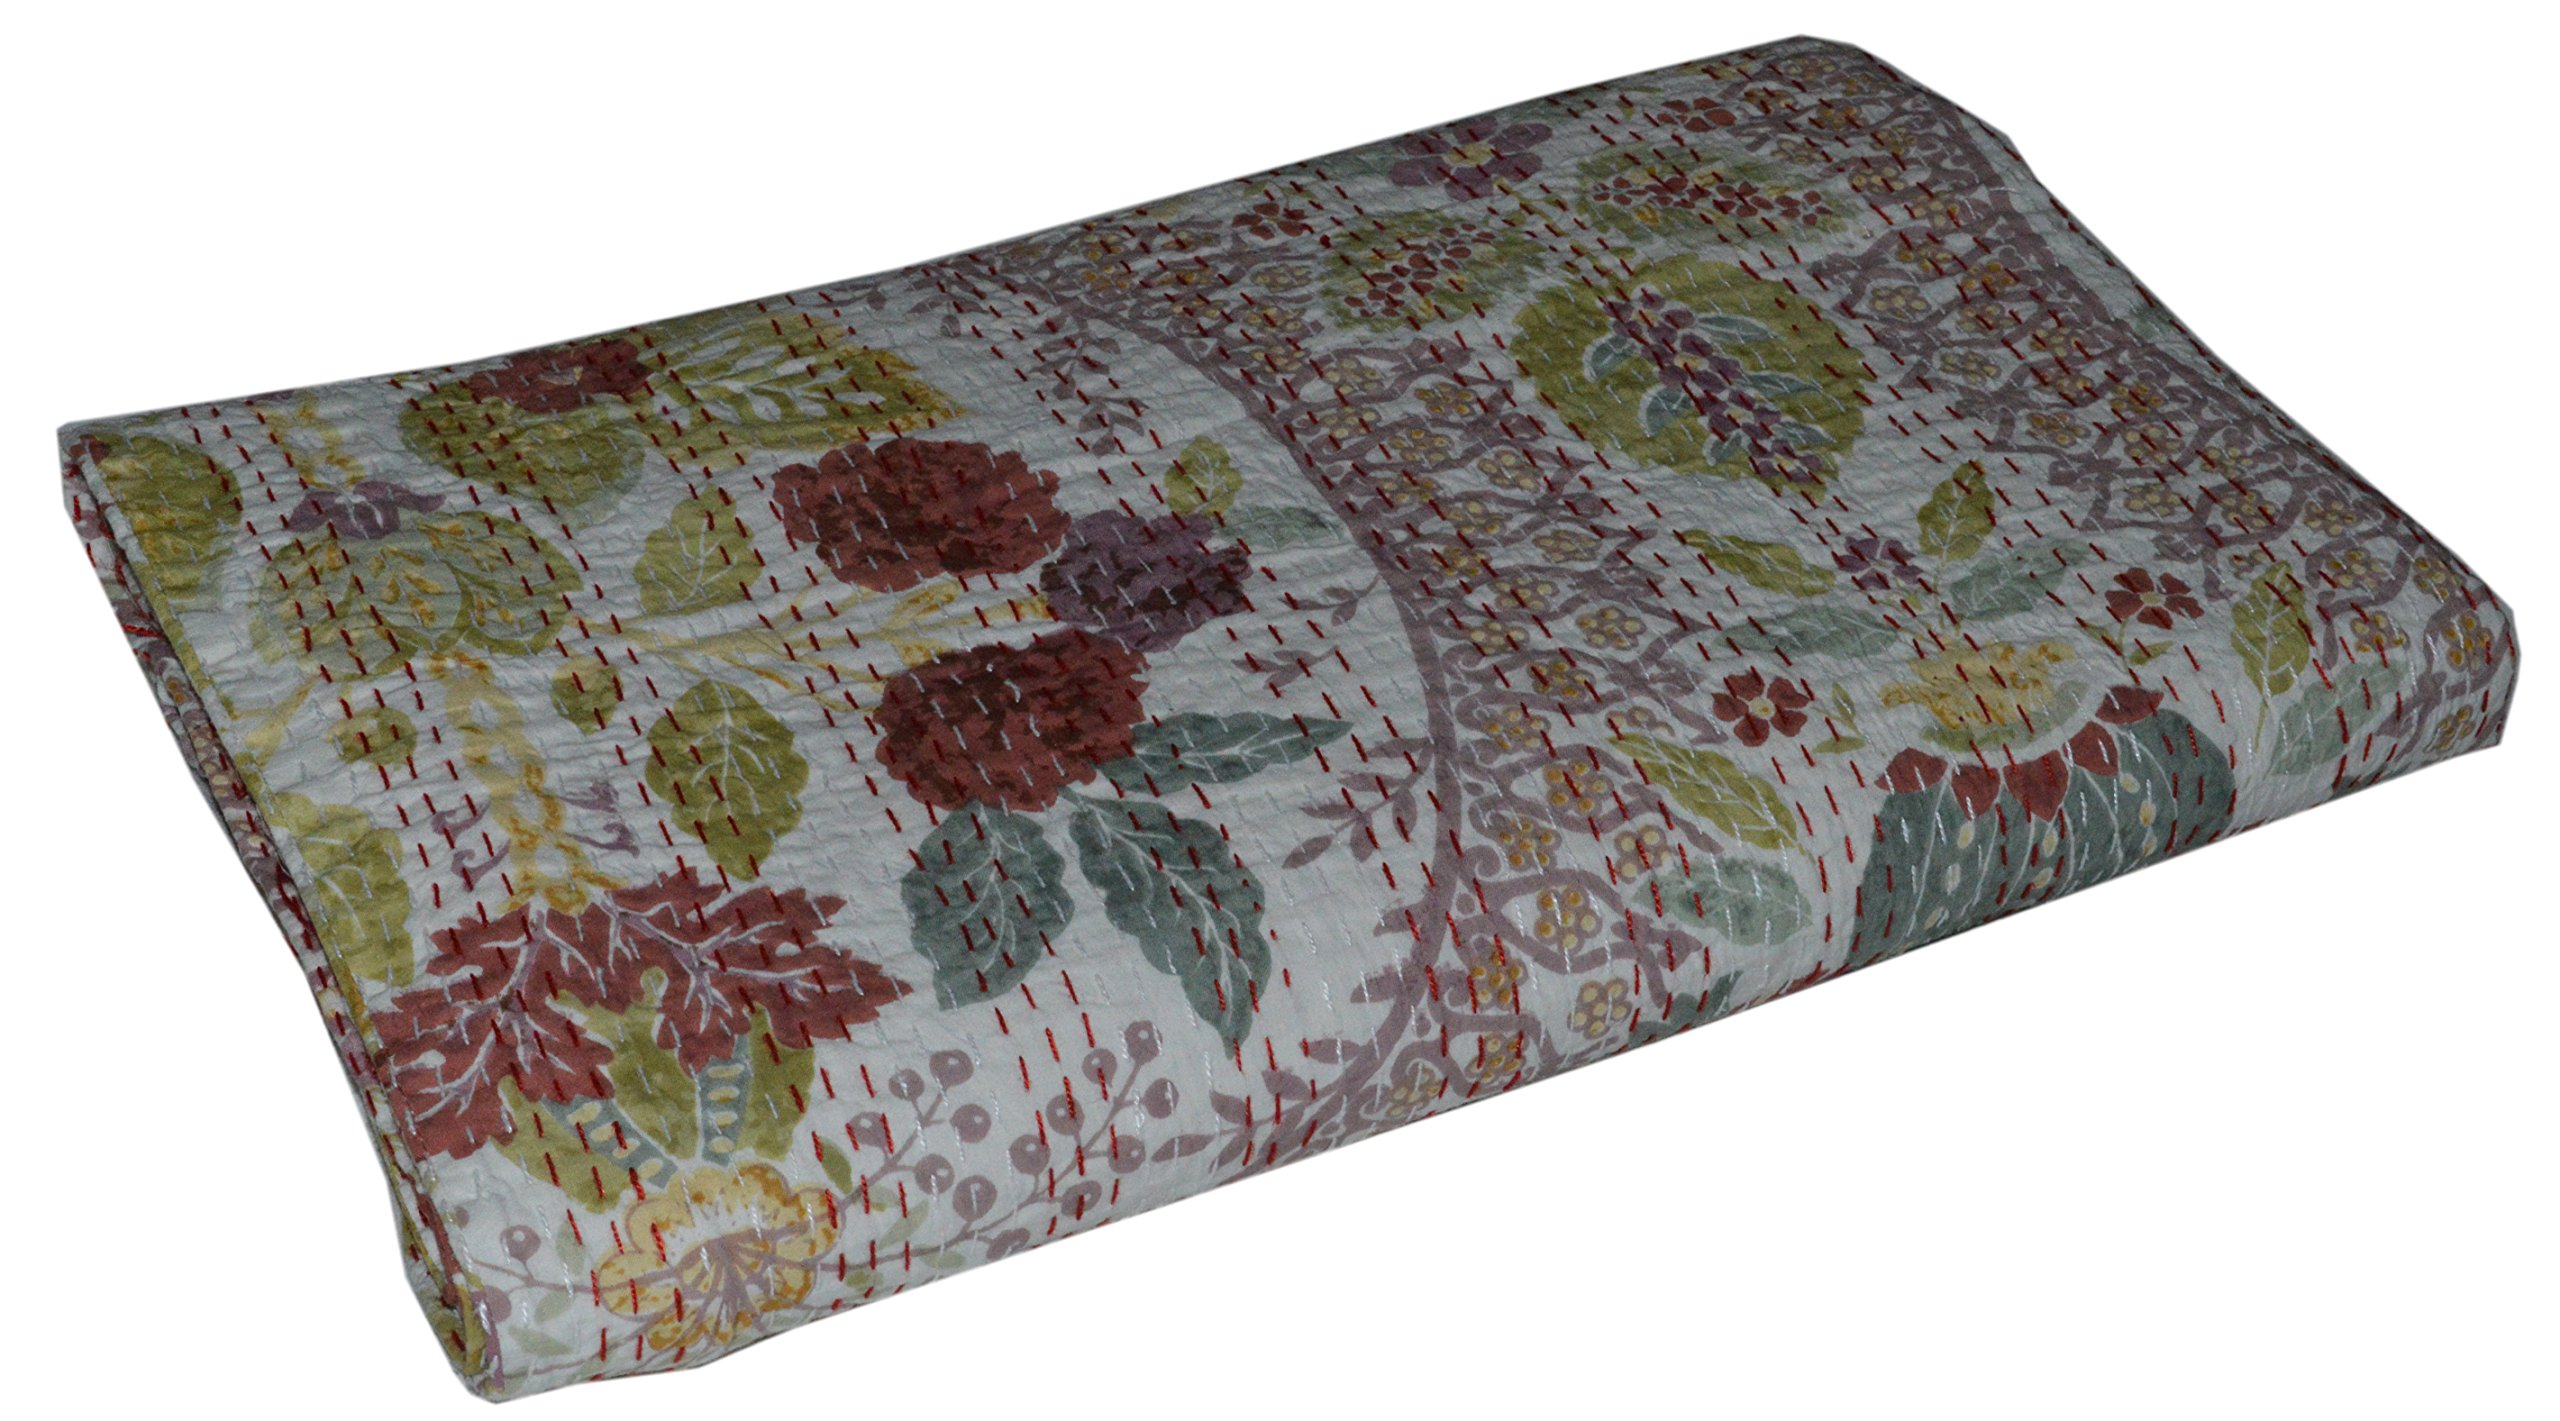 "Hand Made Cotton Indian Kantha Quilted Kantha Quilt Bed Spread Blanket Throw Indian Queen Size Badspread Size 88"" X 106"""